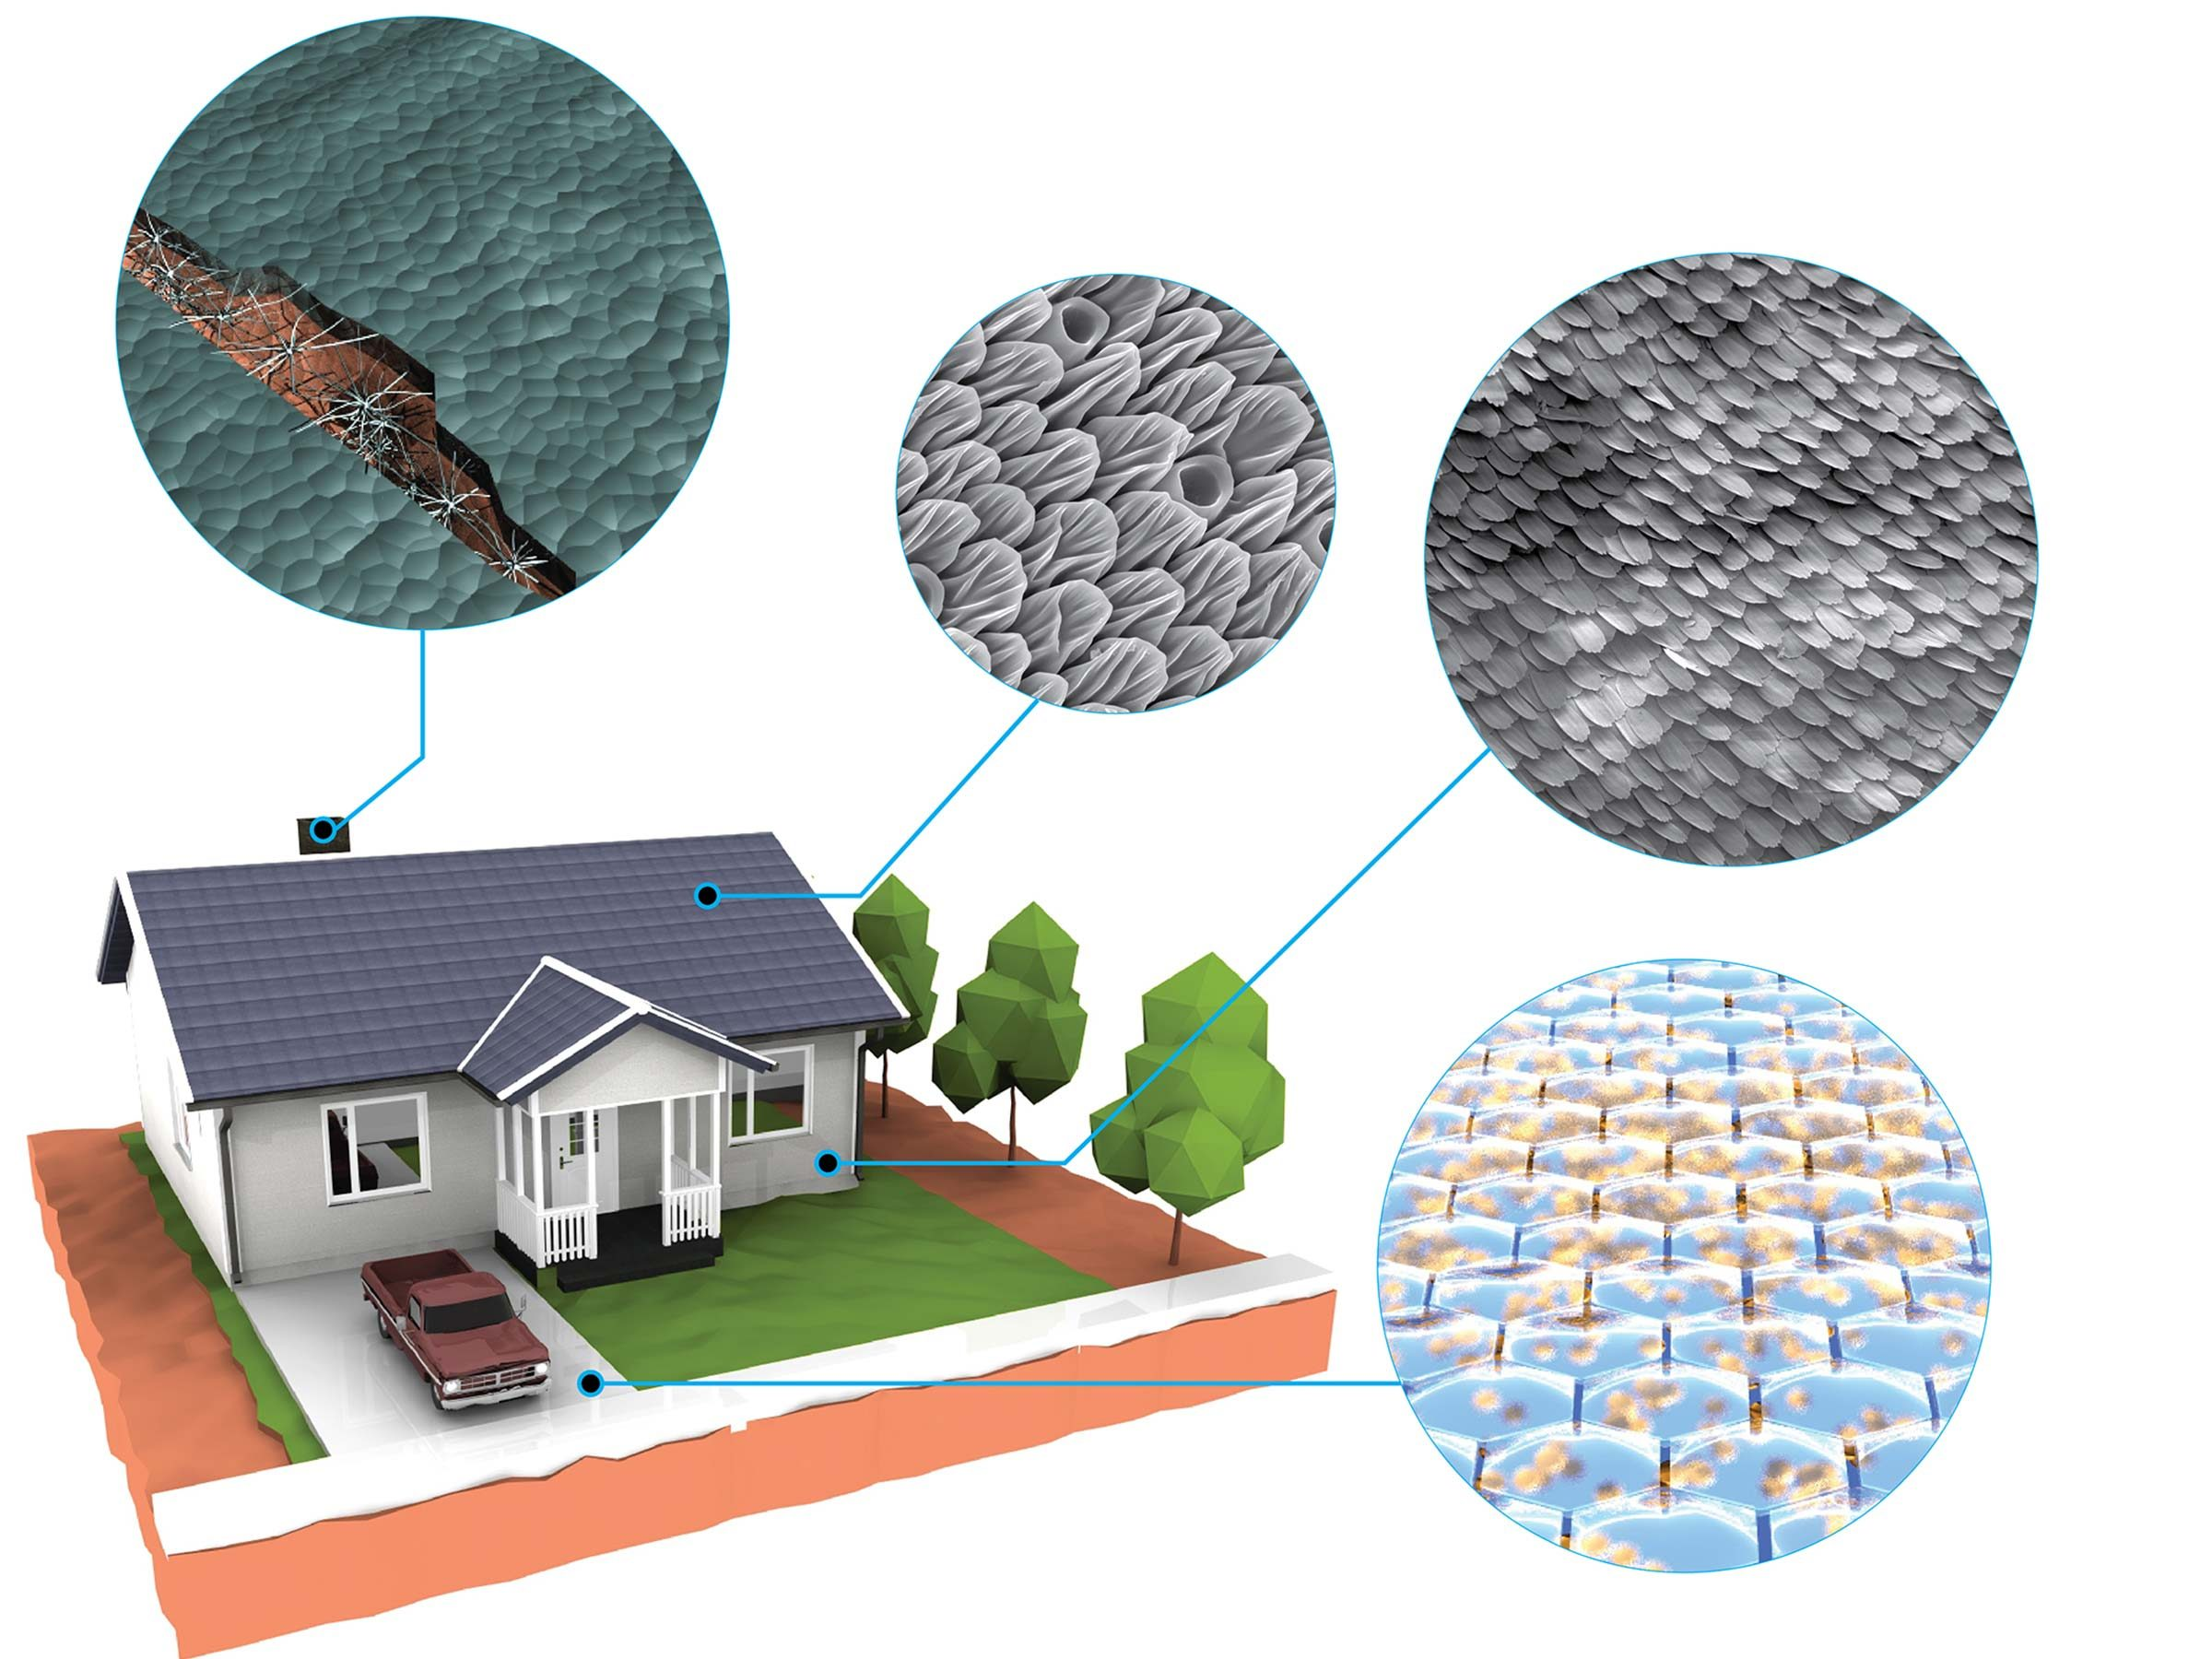 DARPA house graphic